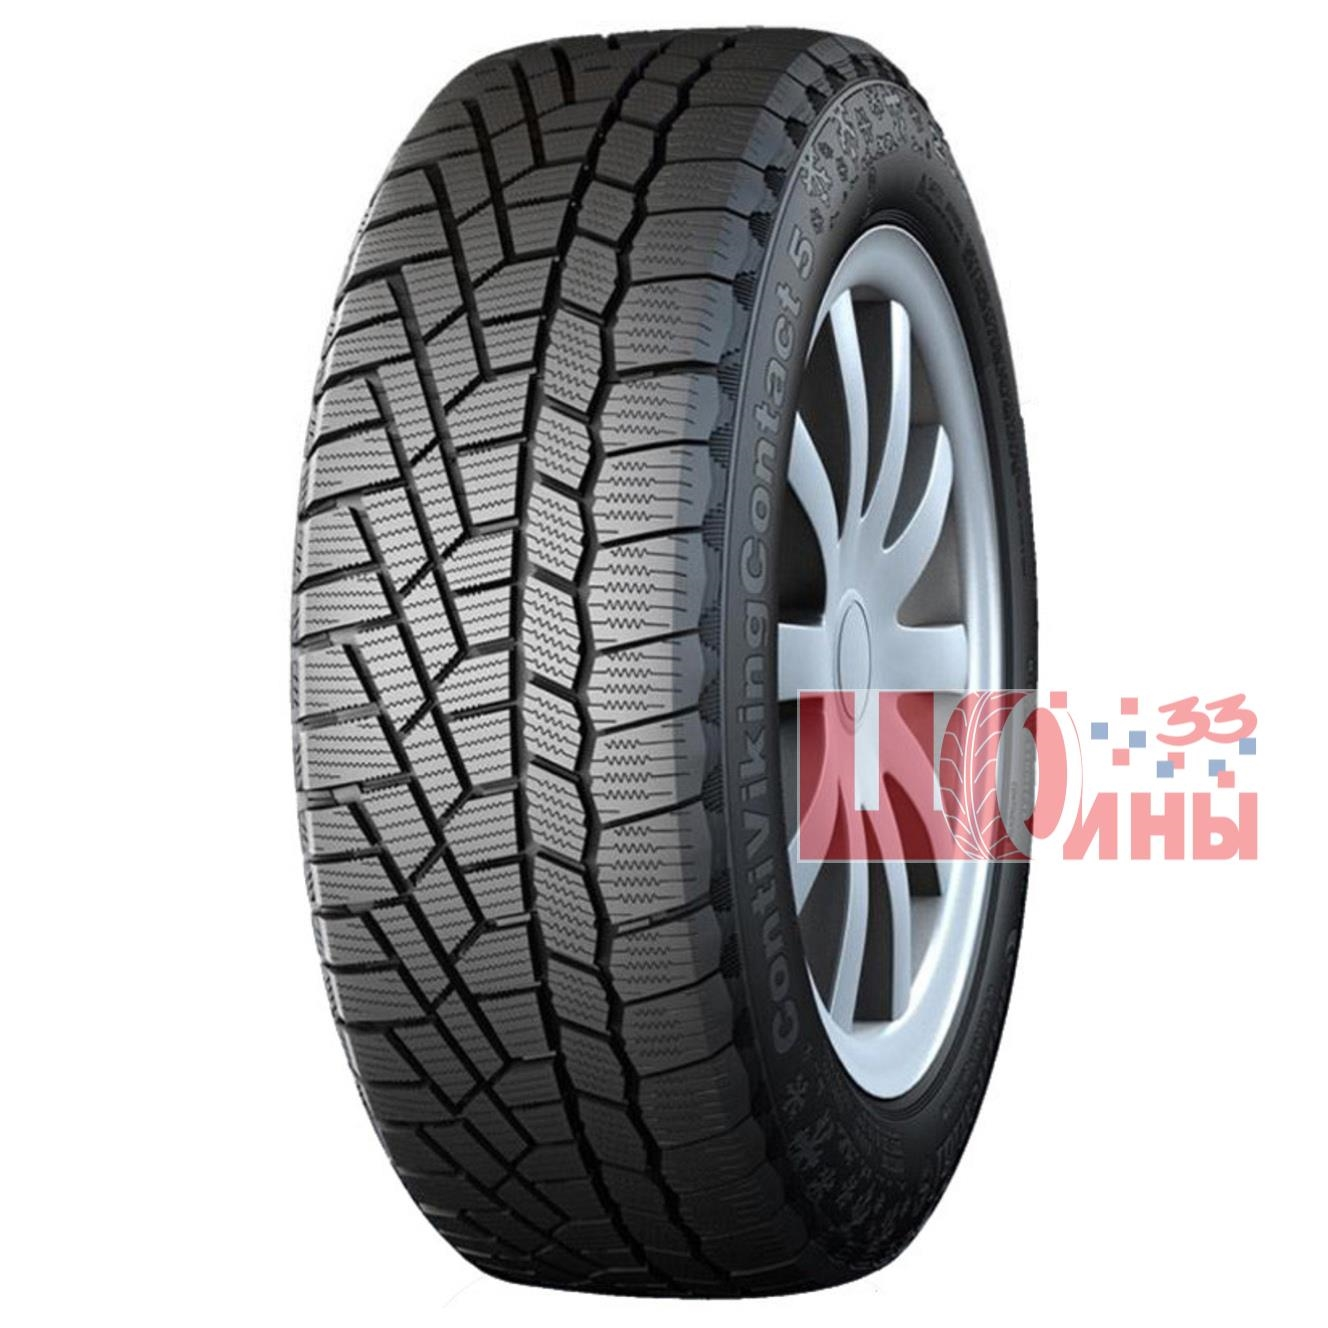 Б/У 235/65 R17 Зима CONTINENTAL C.Viking Contact-5 Кат. 2